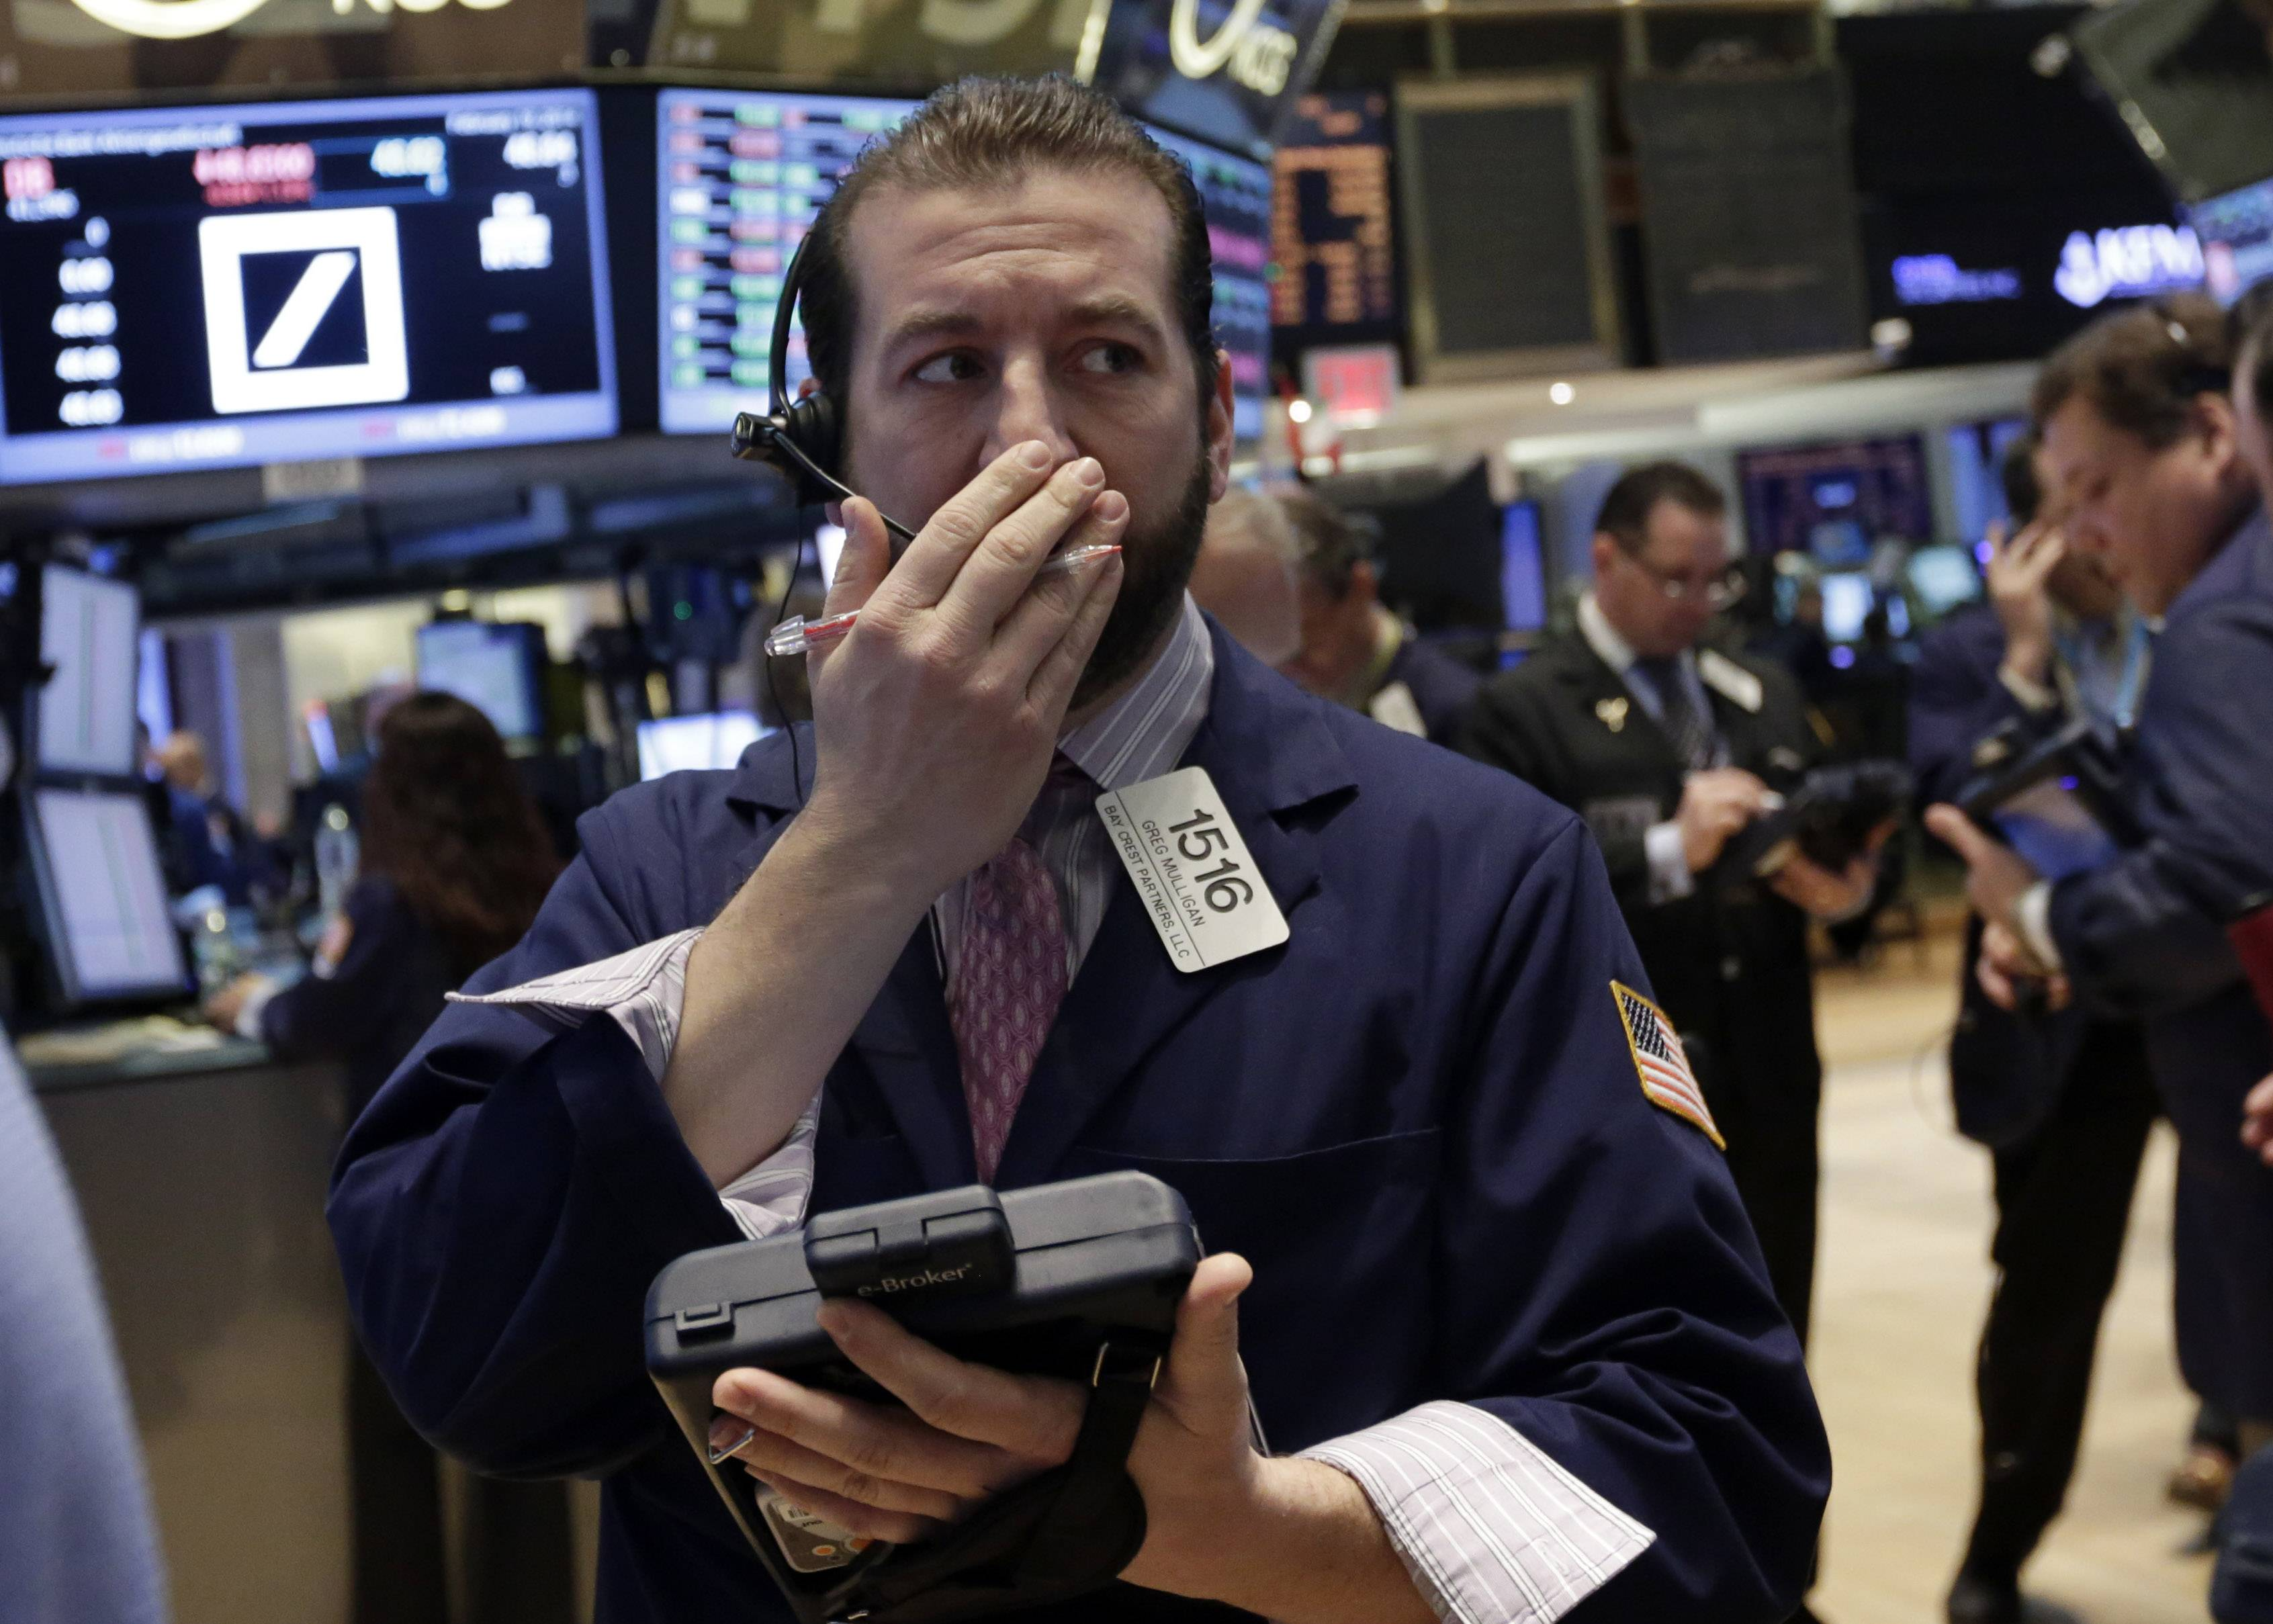 Stocks fell Wednesday, after the Standard & Poor's 500 Index rose to within one point of a record close, as the International Monetary Fund warned of risks to global growth and Federal Reserve indicated stimulus cuts will likely continue.